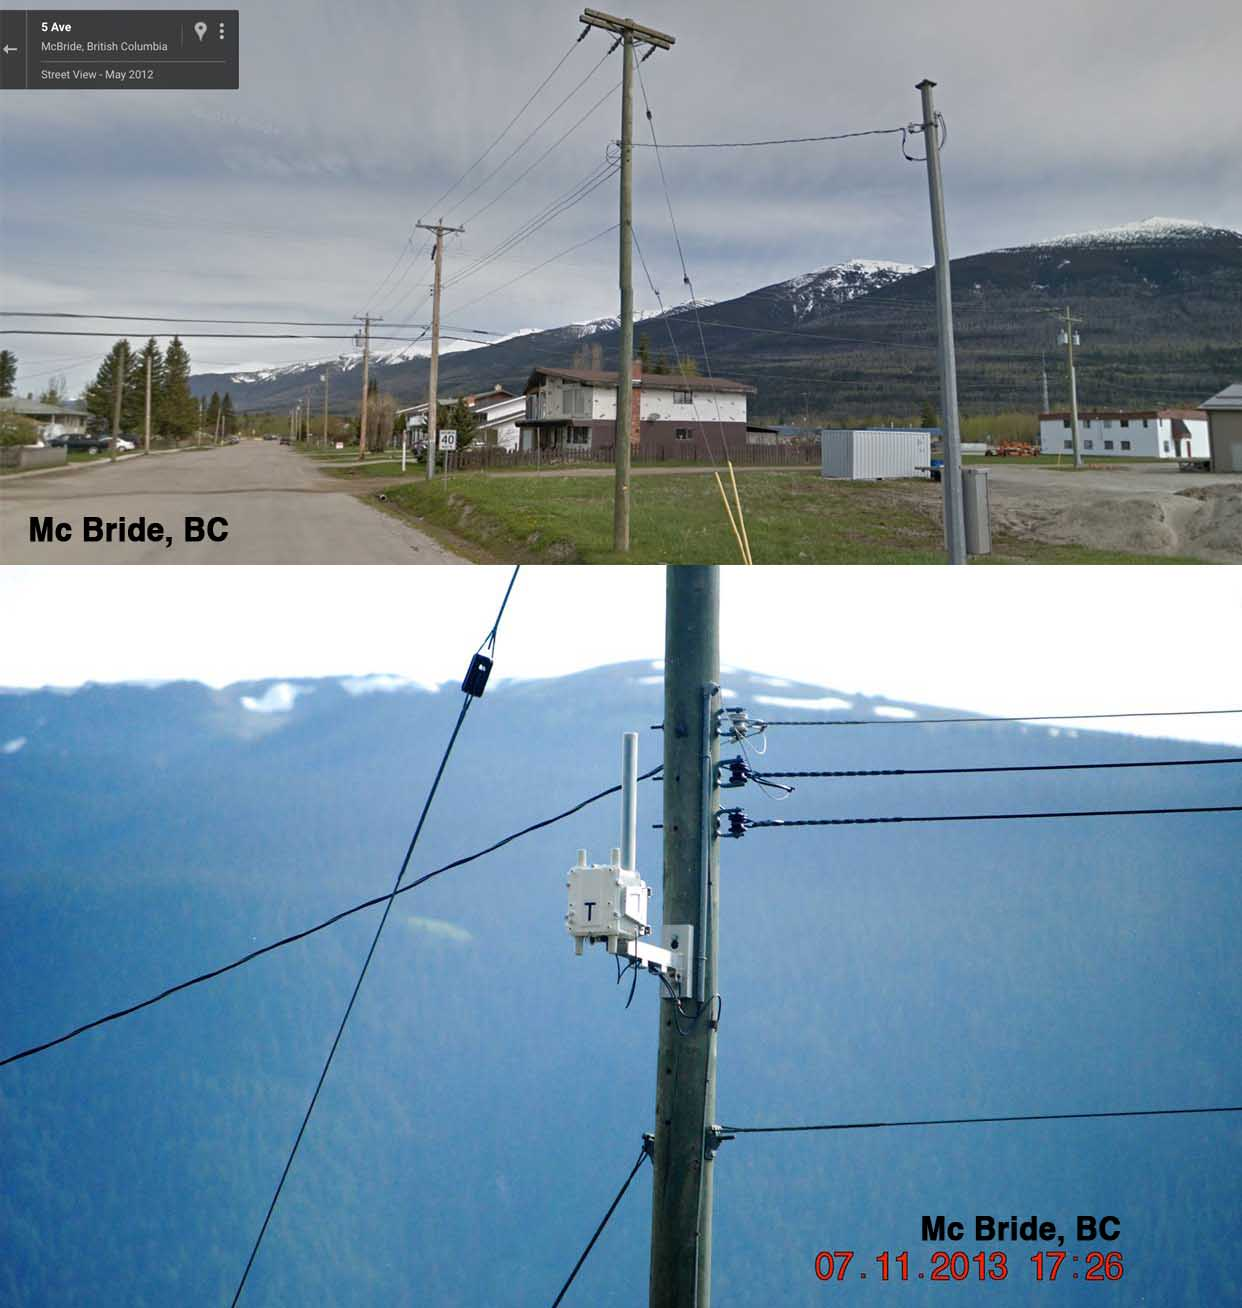 499 Main St. McBride   - BC Hydro Collector Router (Cisco Mesh Network)